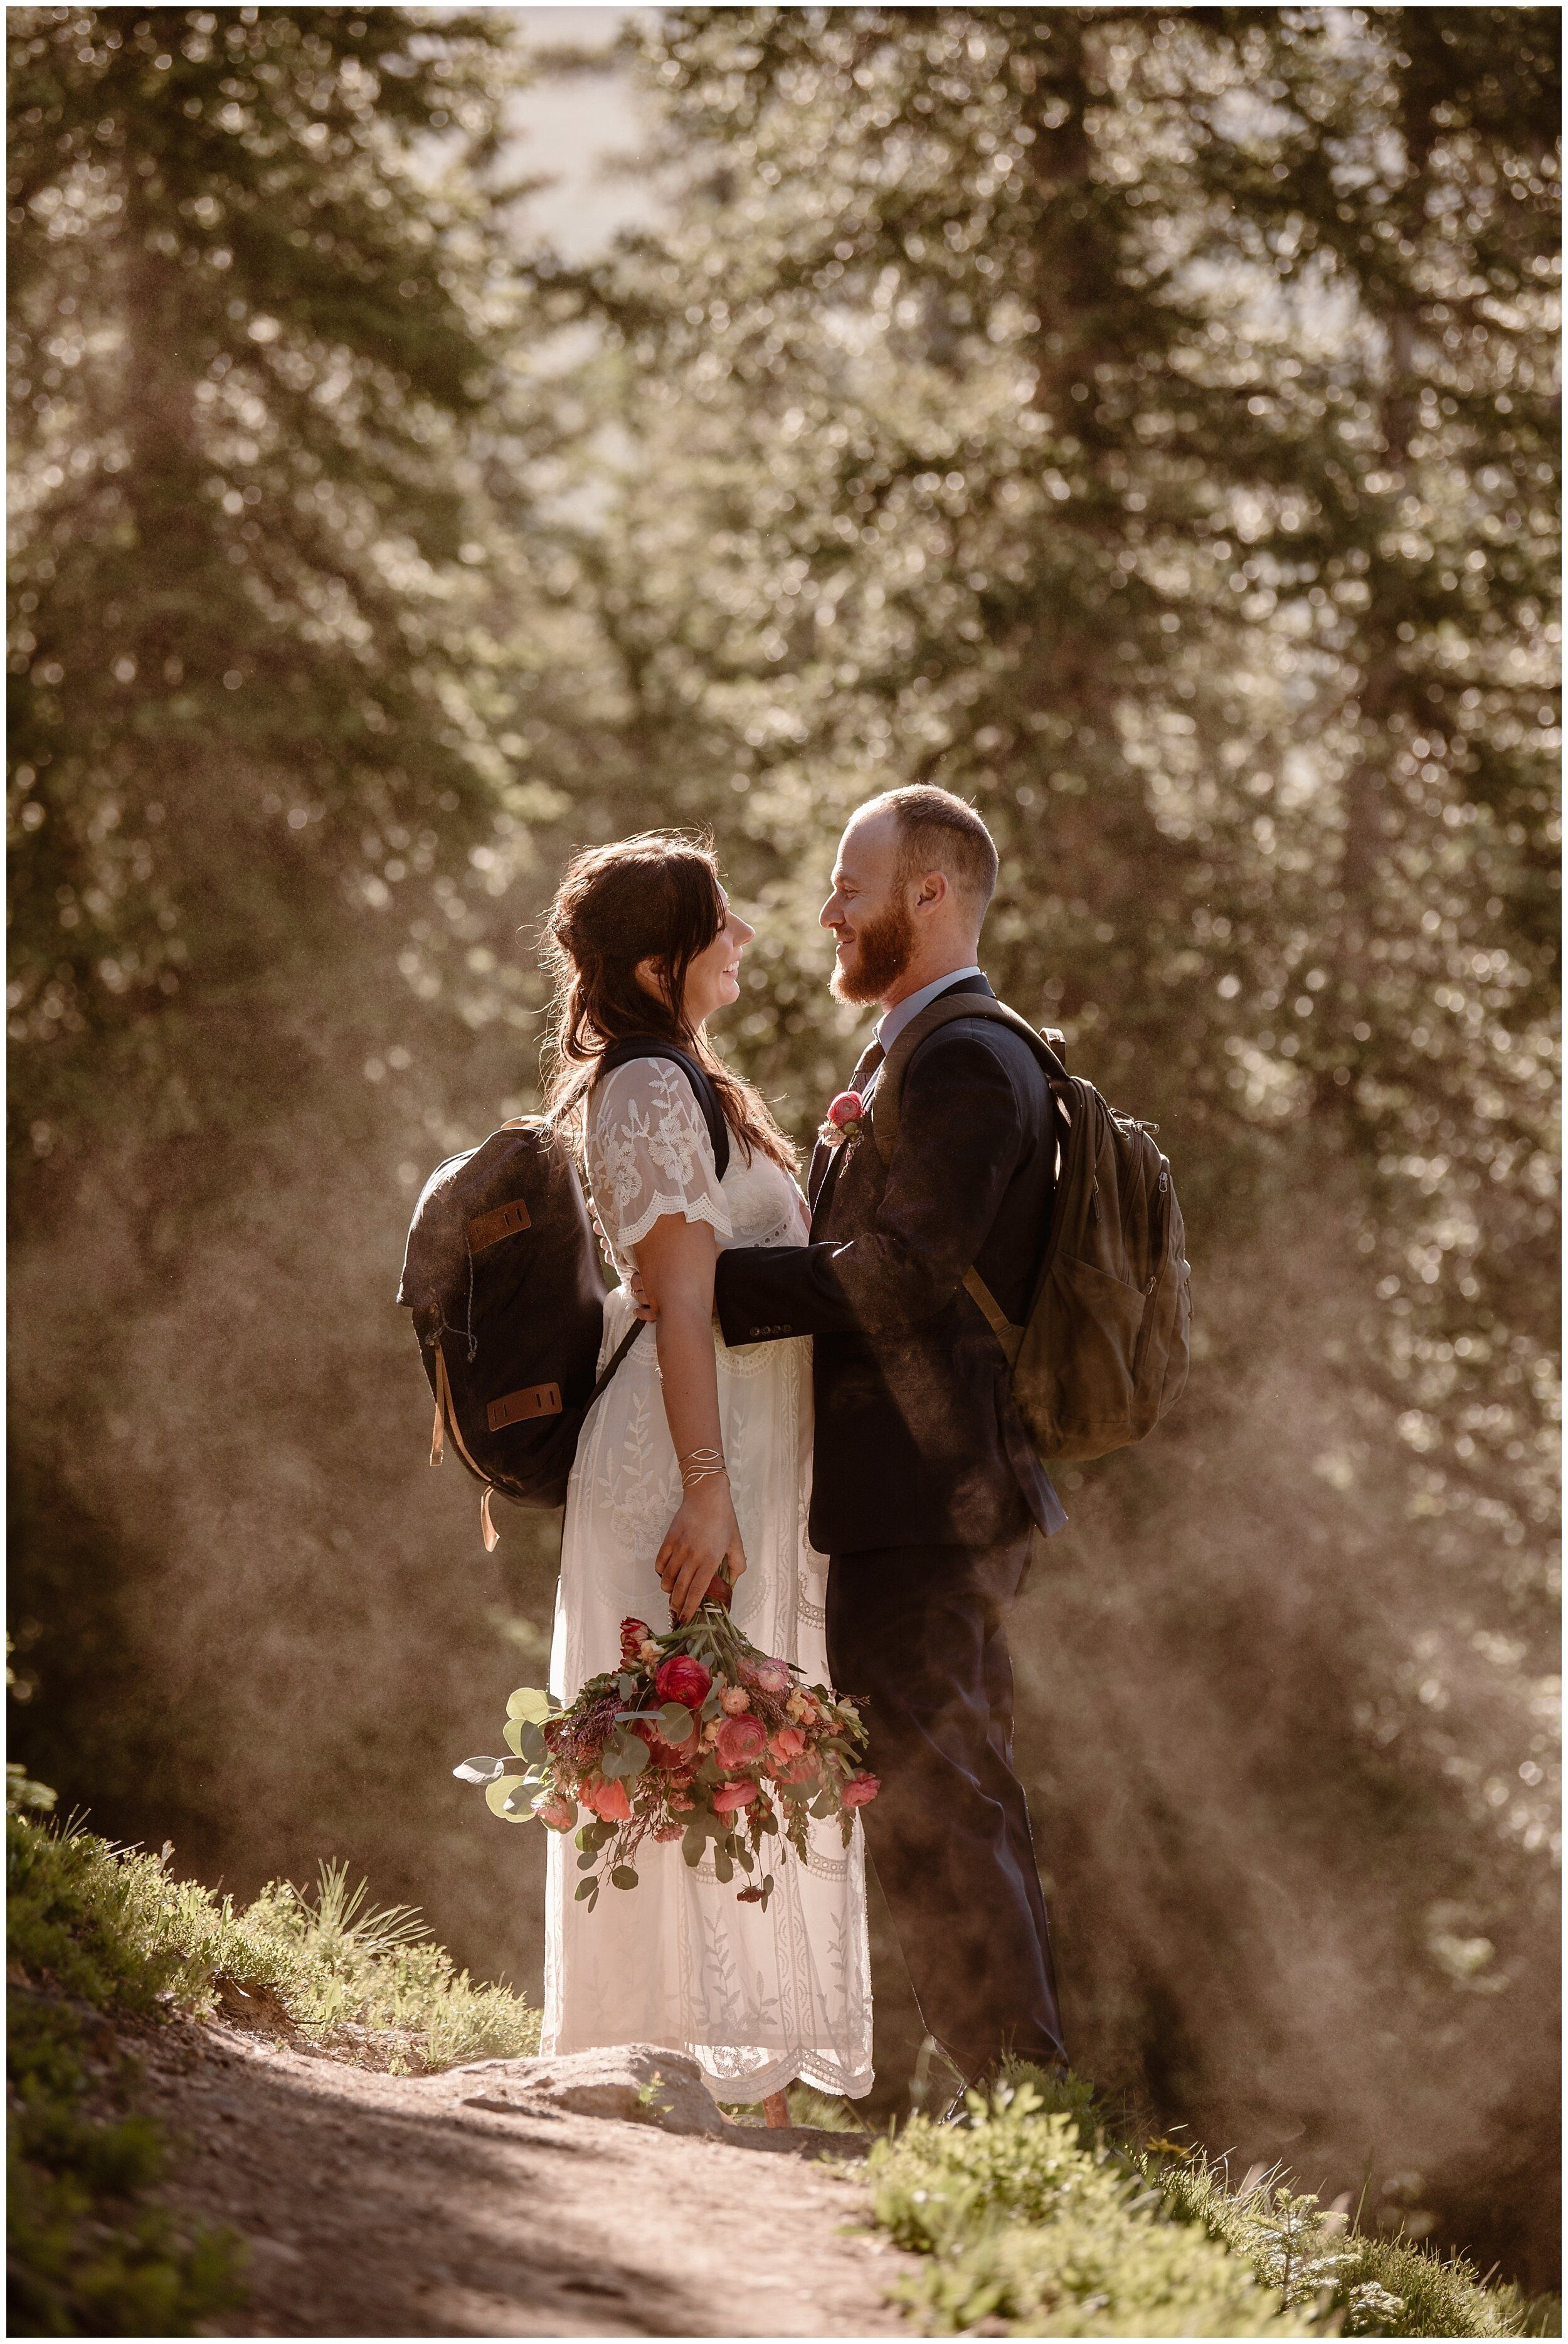 A Groom Holds His Bride Close After Their Elopement Ceremony In One Of The Many Forest Wedding Venues I In 2020 Free Wedding Venues Forest Wedding Venue Wedding Venues